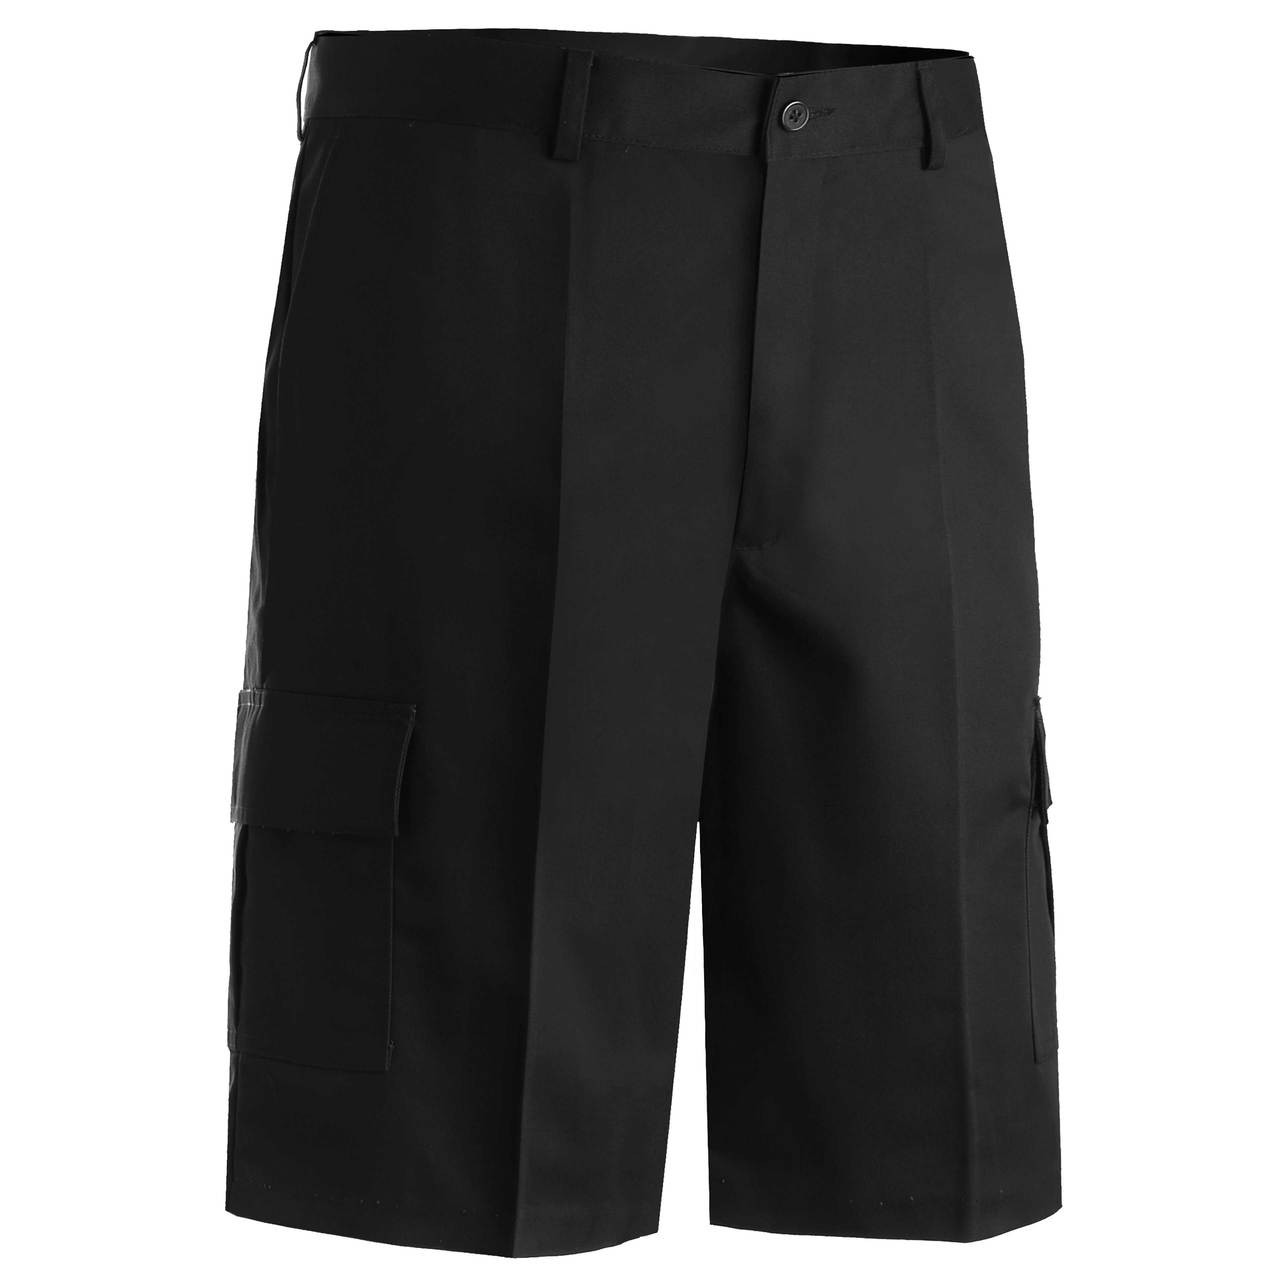 Men's Cargo Chino Uniform Shorts